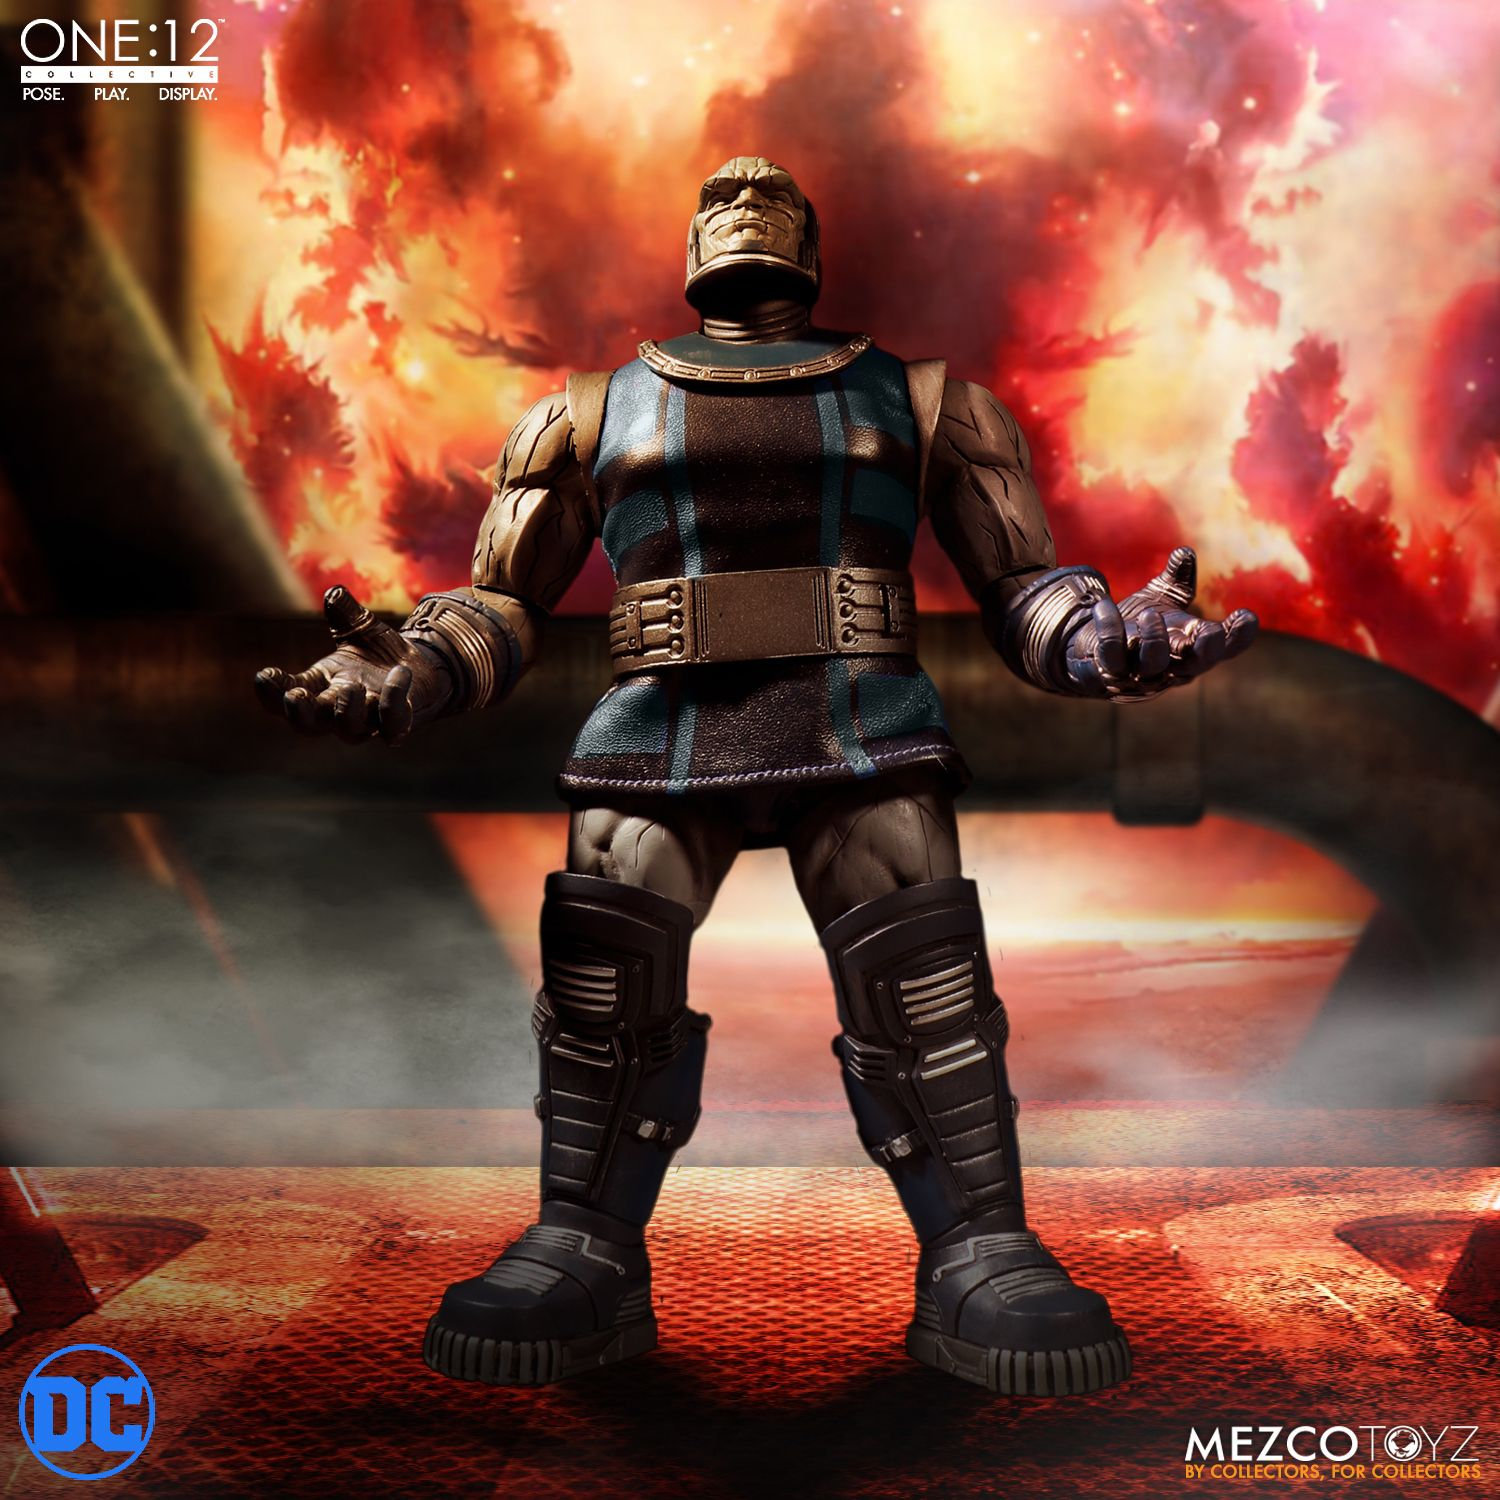 Mezco One:12 Collective Darkseid 7.5 Inch Action Figure In Stock Mint